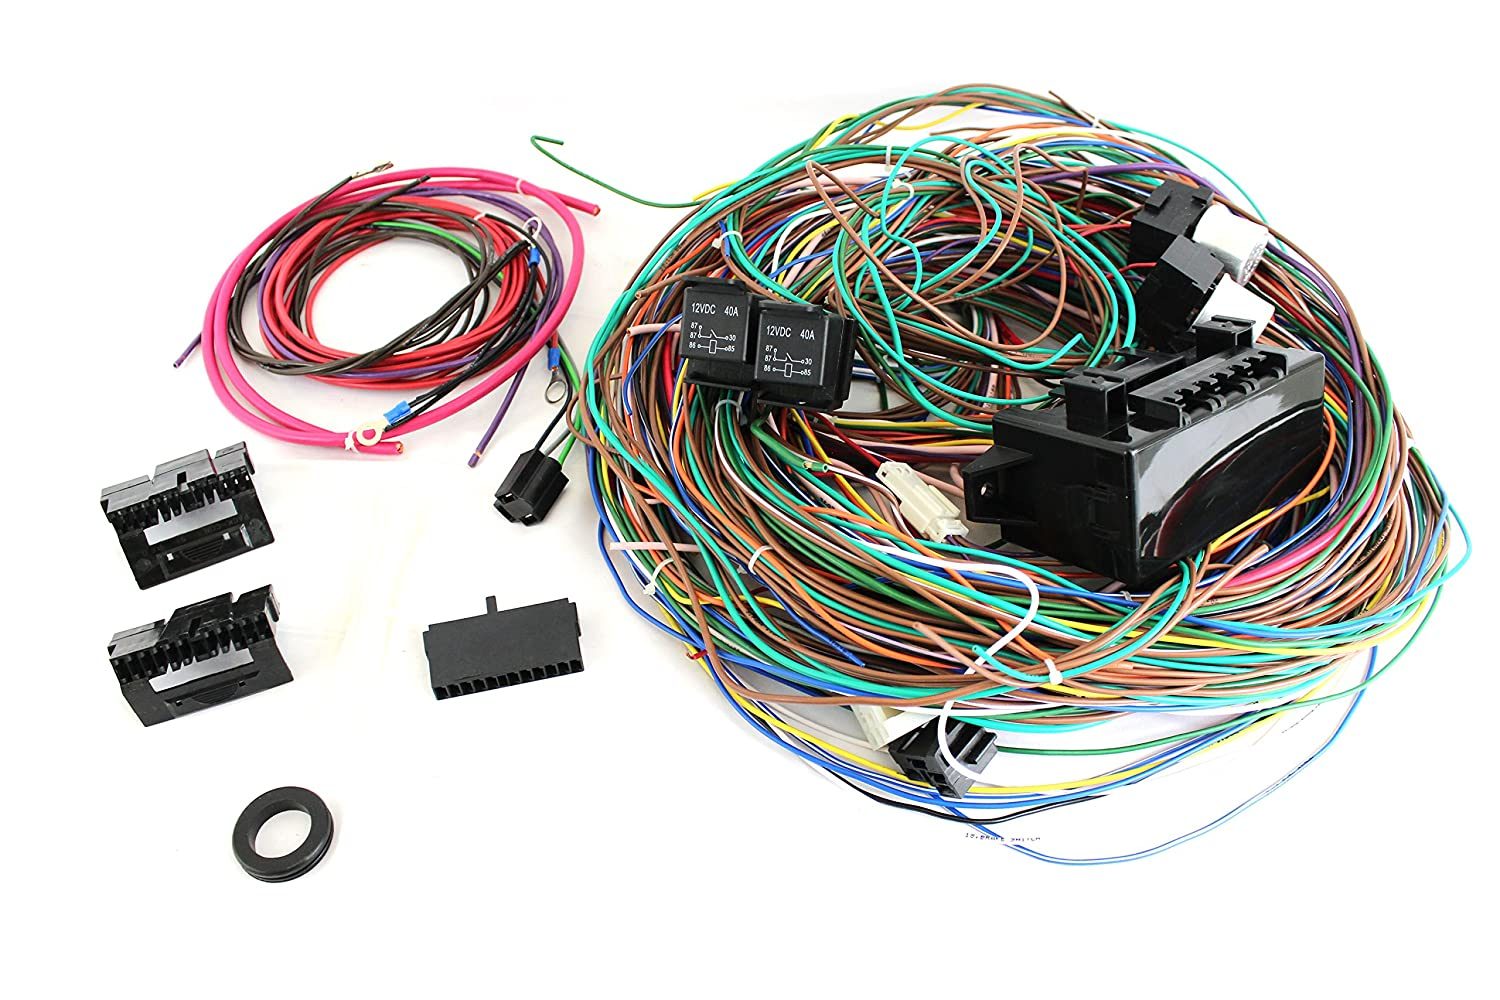 91YoamXFx2L._SL1500_ amazon com 12v 24 circuit 15 fuse street hot rat rod wiring hot rod wiring harness universal at panicattacktreatment.co